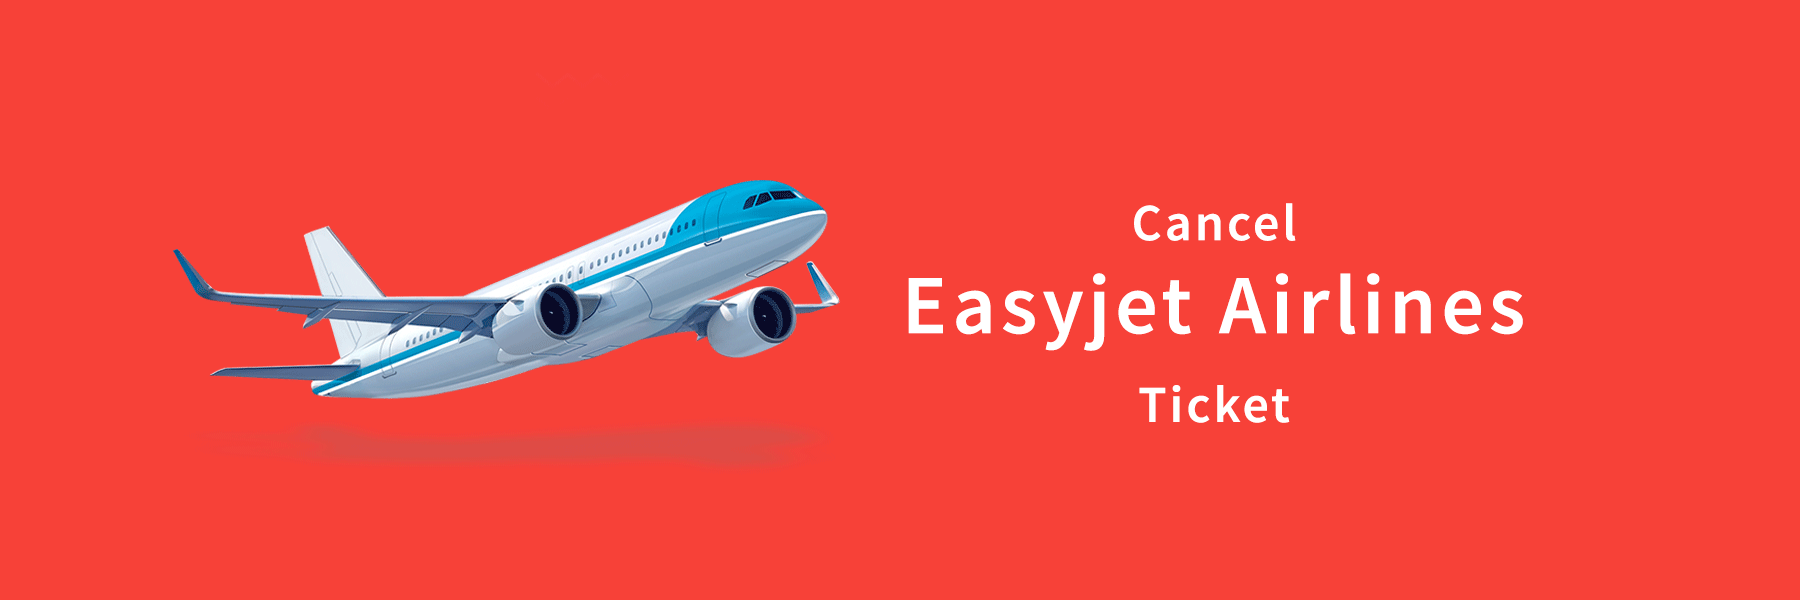 Easyjet Cancellation Process